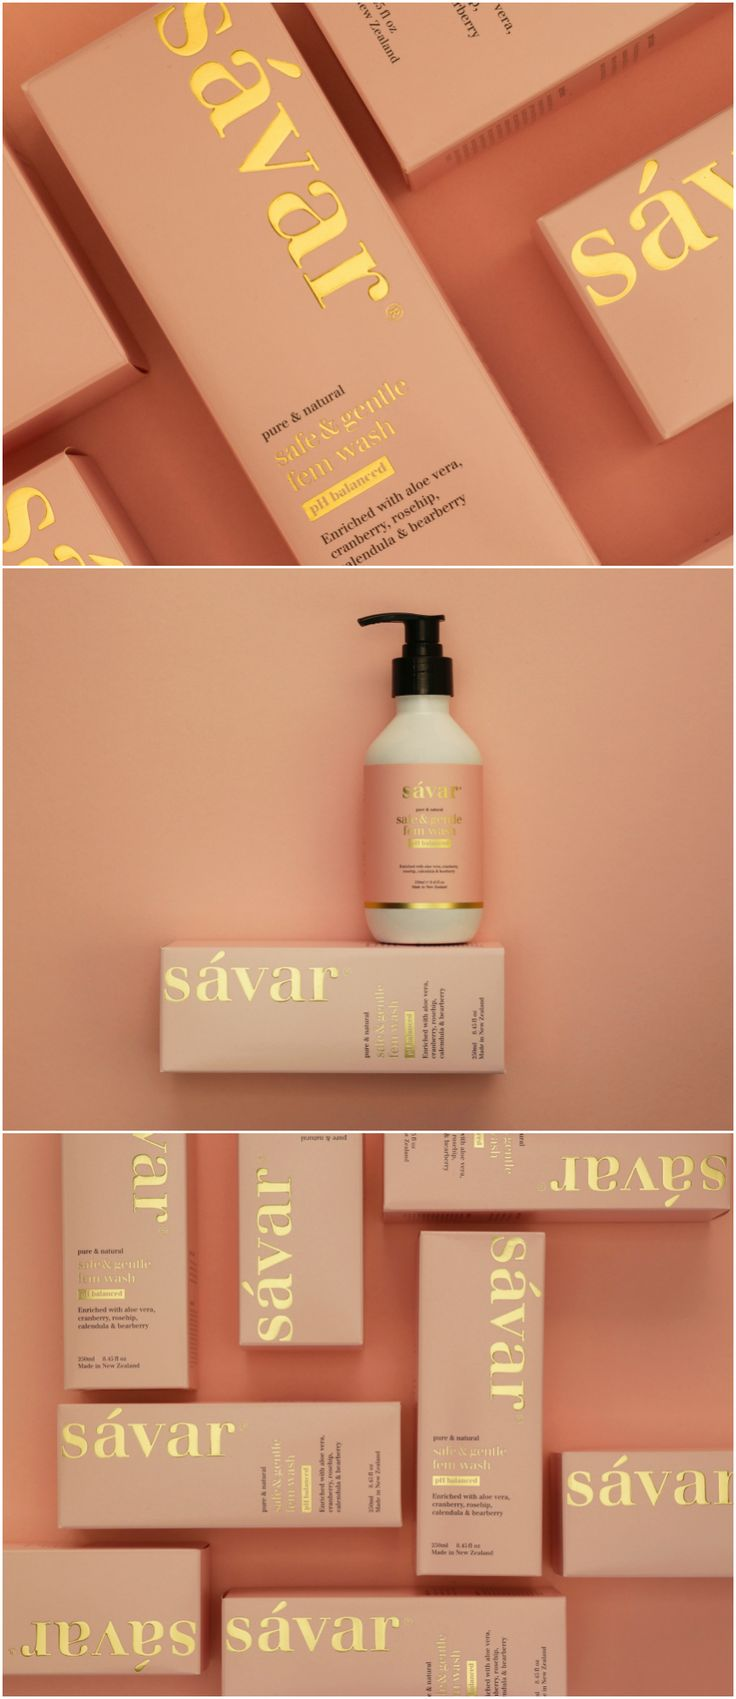 Elevating a Female Wash from a Basic Pharma Product to High-End Lifestyle Design Agency: Redfire Brand / Project Name: Savar Fem Wash Location: New Zealand Category: #Health #Beauty #Cosmetics World Brand & Packaging Design Society